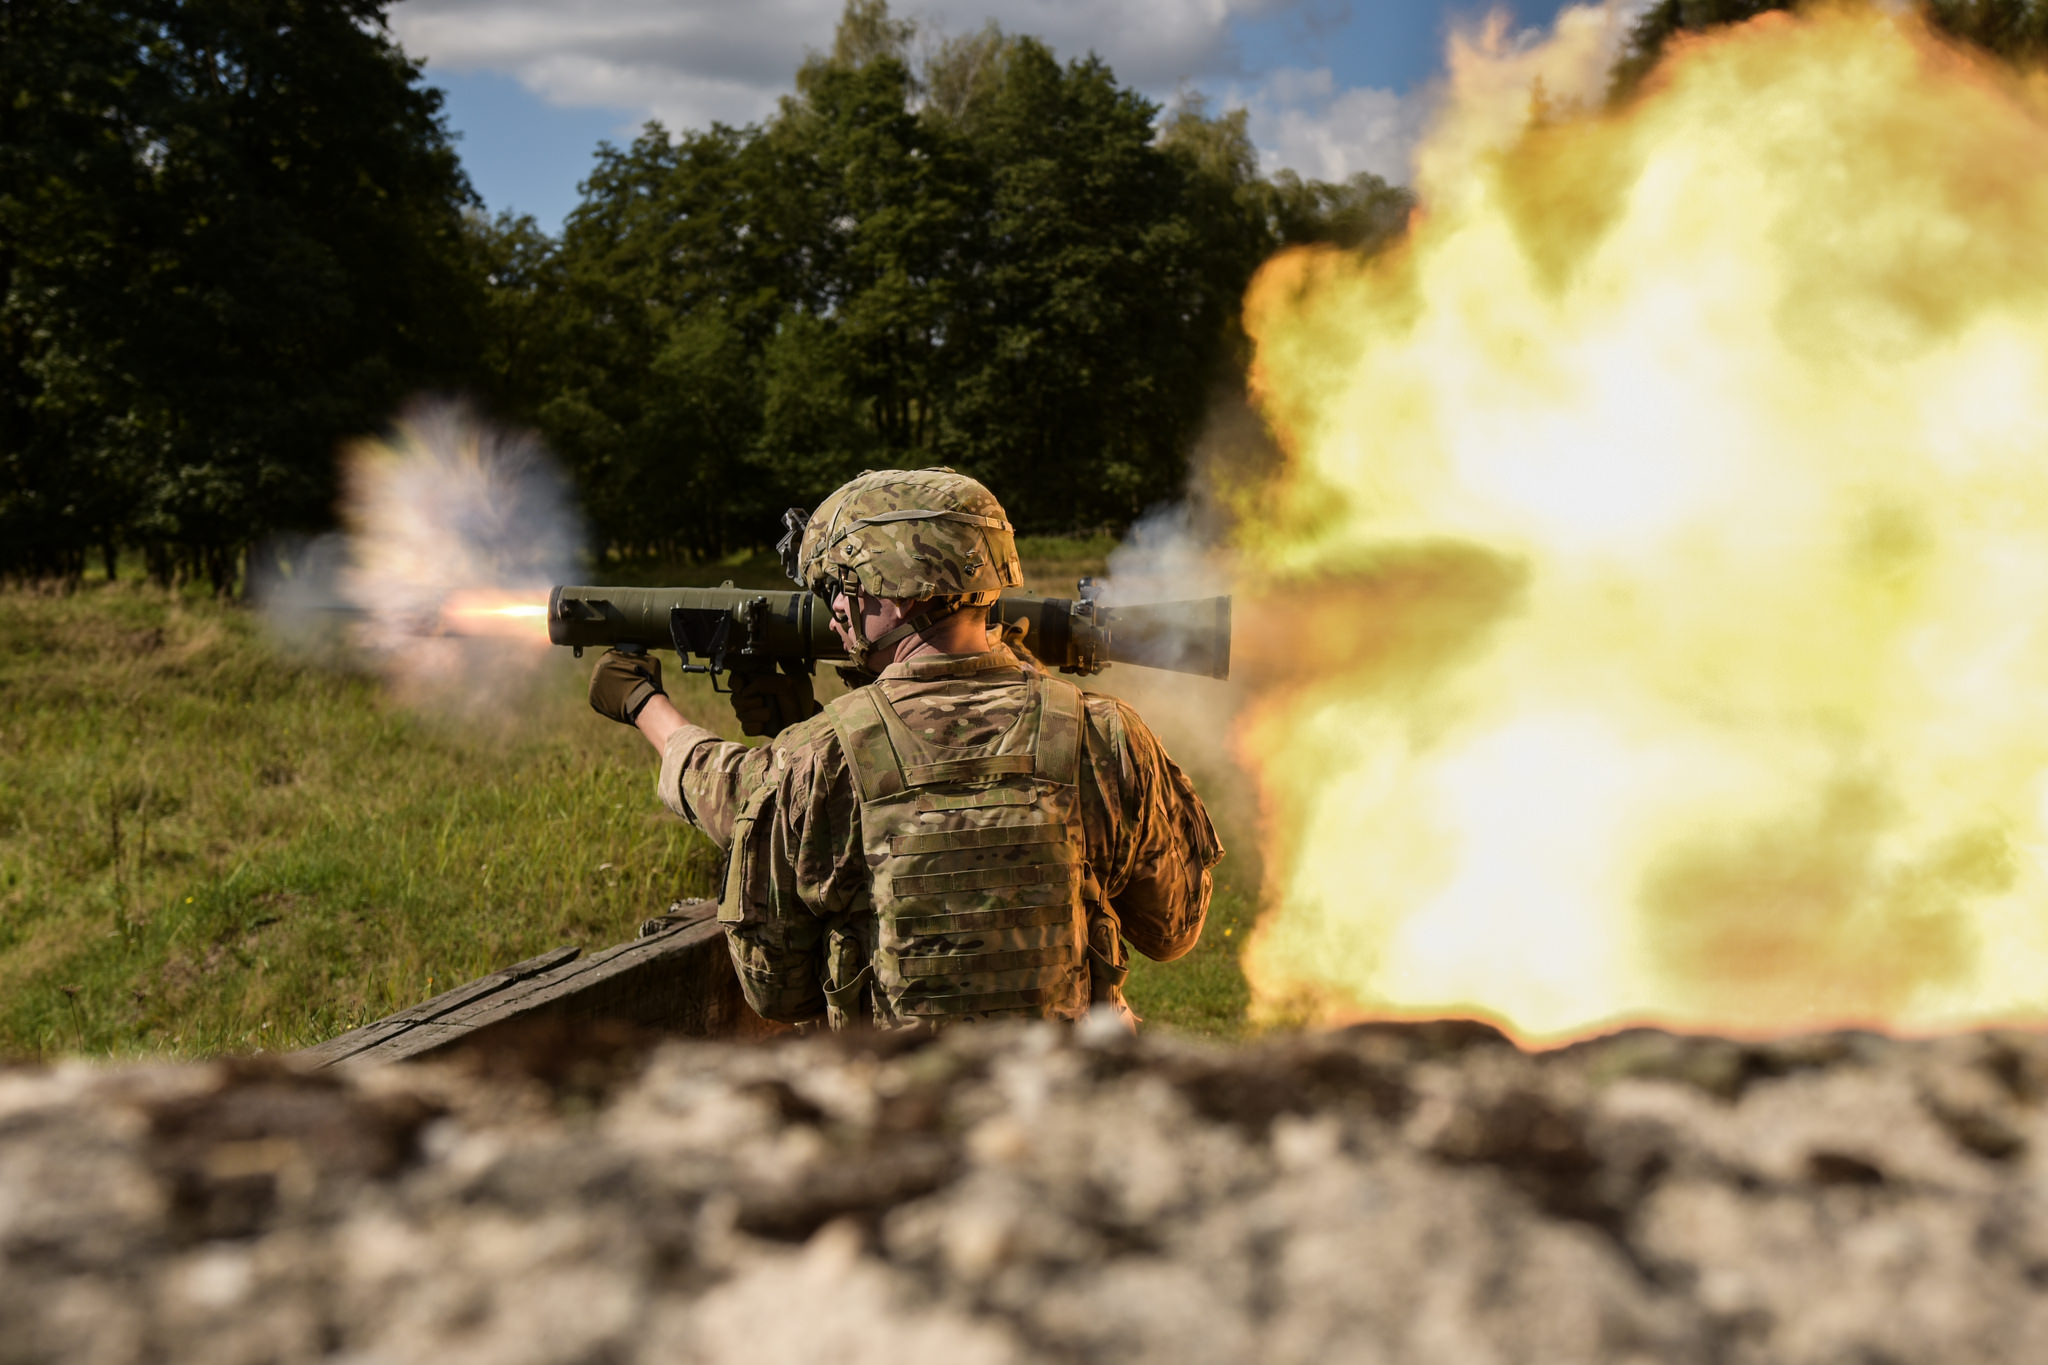 U.S. soldiers assigned to the 1st Battalion, 503rd Infantry Regiment, 173rd Airborne Brigade engaged targets with the Carl Gustaf 84mm weapon system in Grafenwoehr, Germany, Sept. 8, 2018, during Saber Junction 18. (Capt. Joseph Legros/Army)